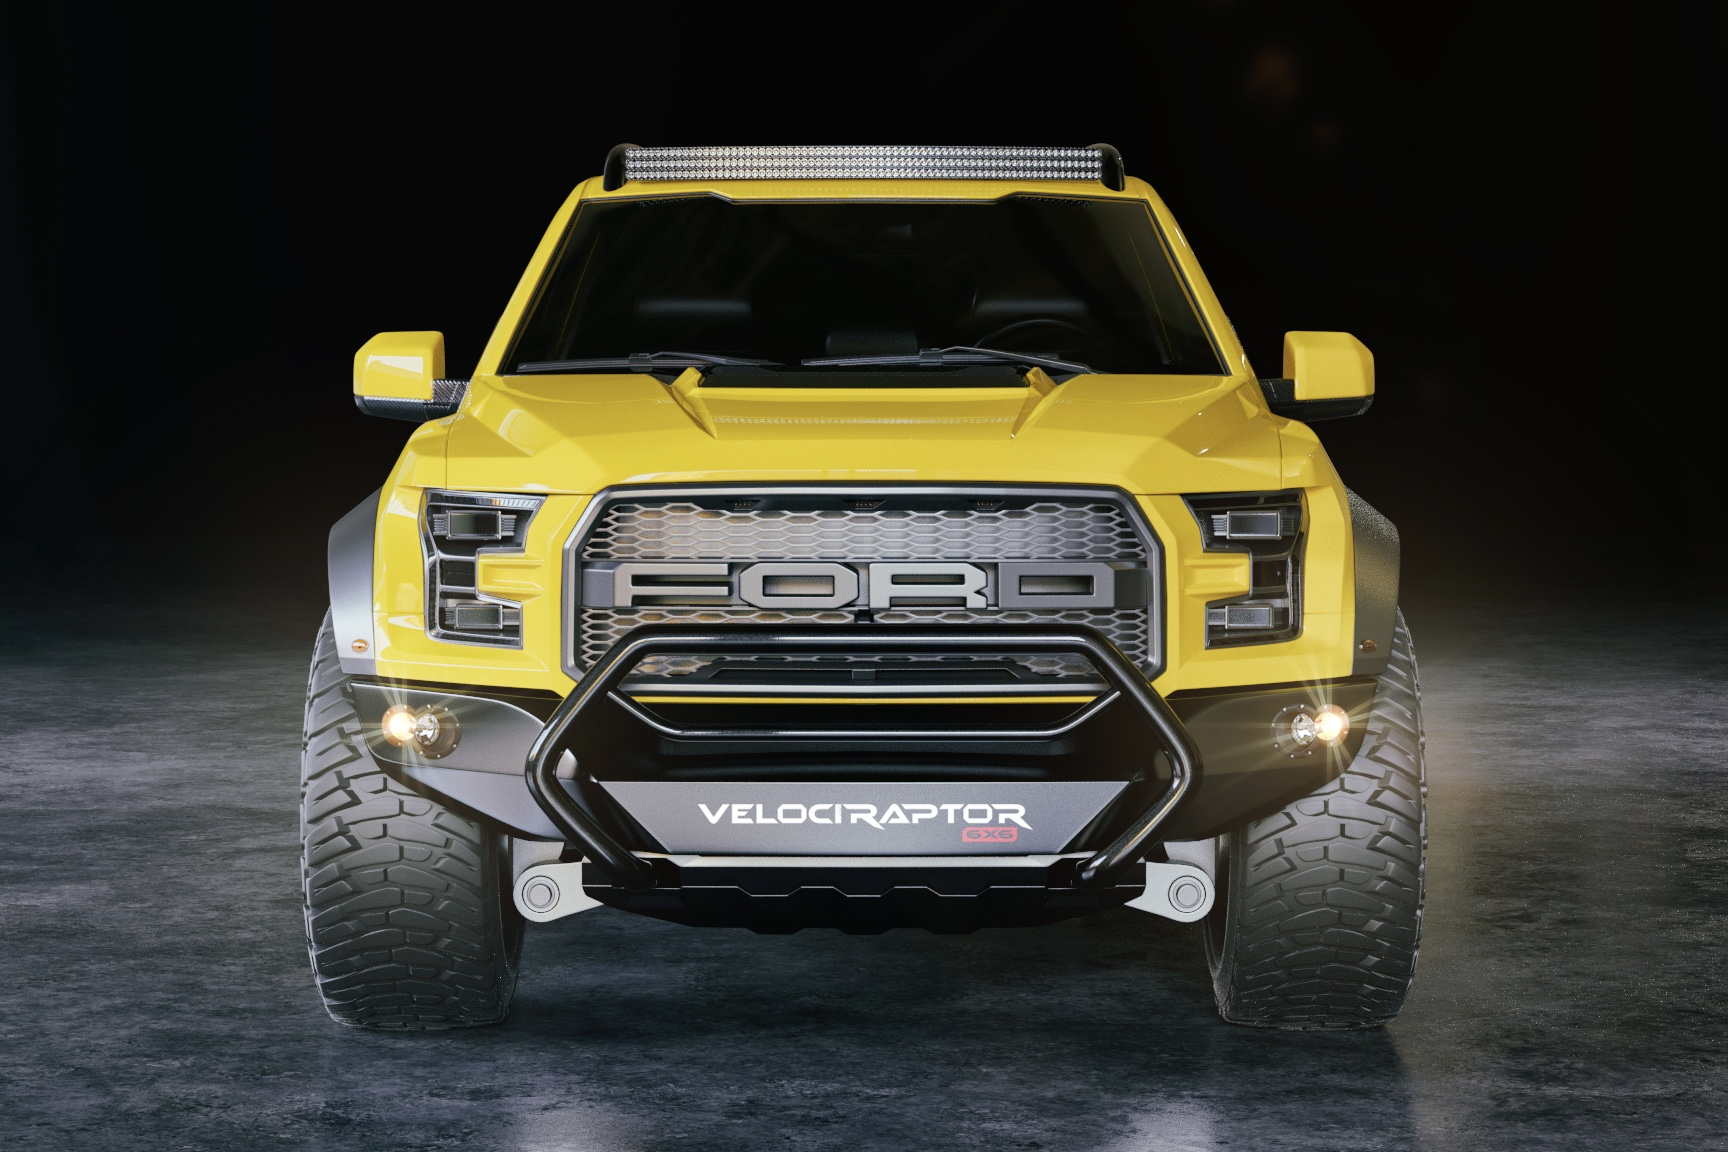 VelociRaptor 600 twin turbo, Automotive, Cars, Hennesey VelociRapor,SXdrv,